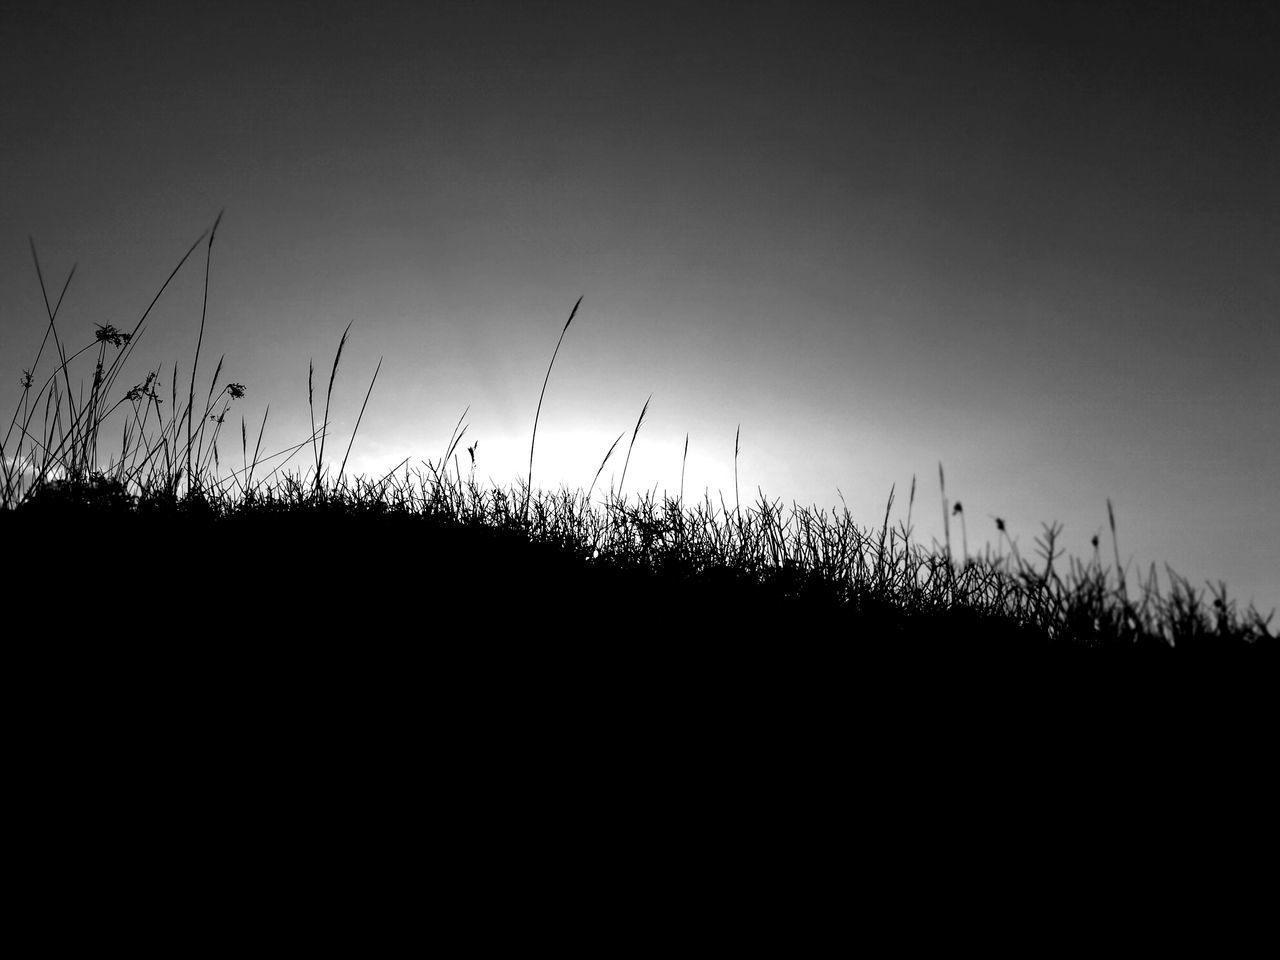 SILHOUETTE PLANTS ON LAND AGAINST CLEAR SKY